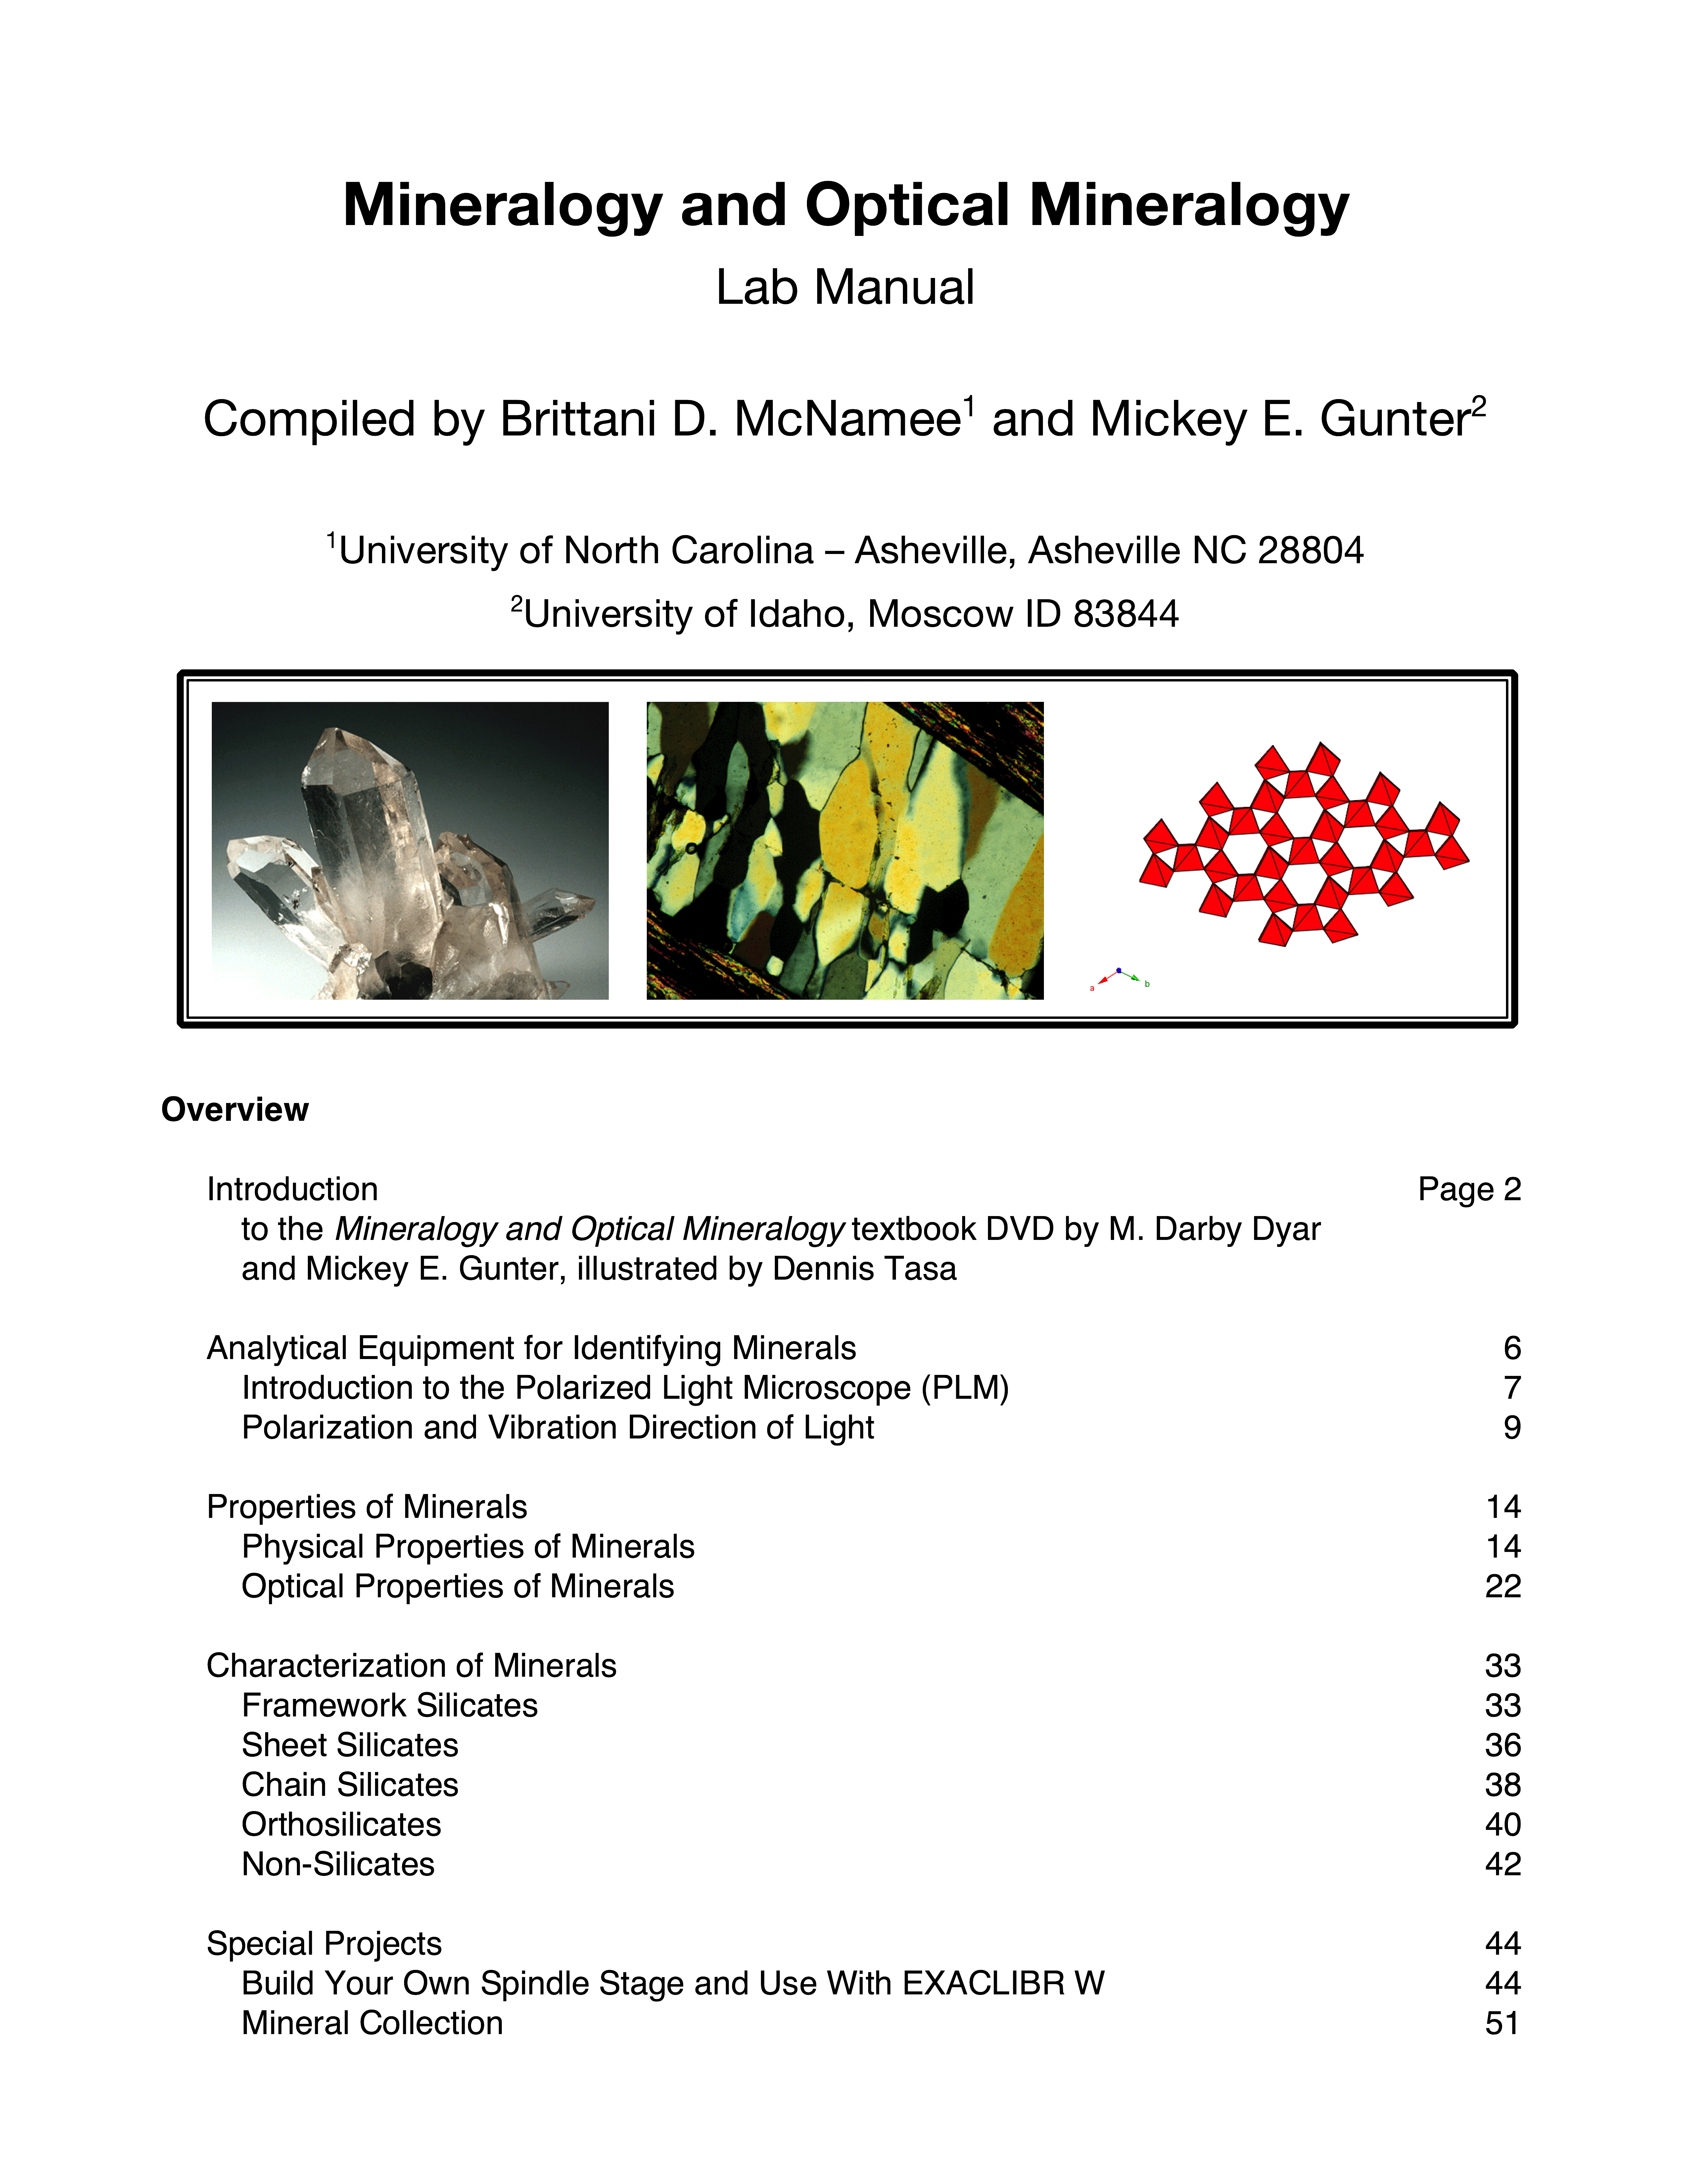 Cover of Guide to Mineralogy and Optical Mineralogy Laboratory Manual